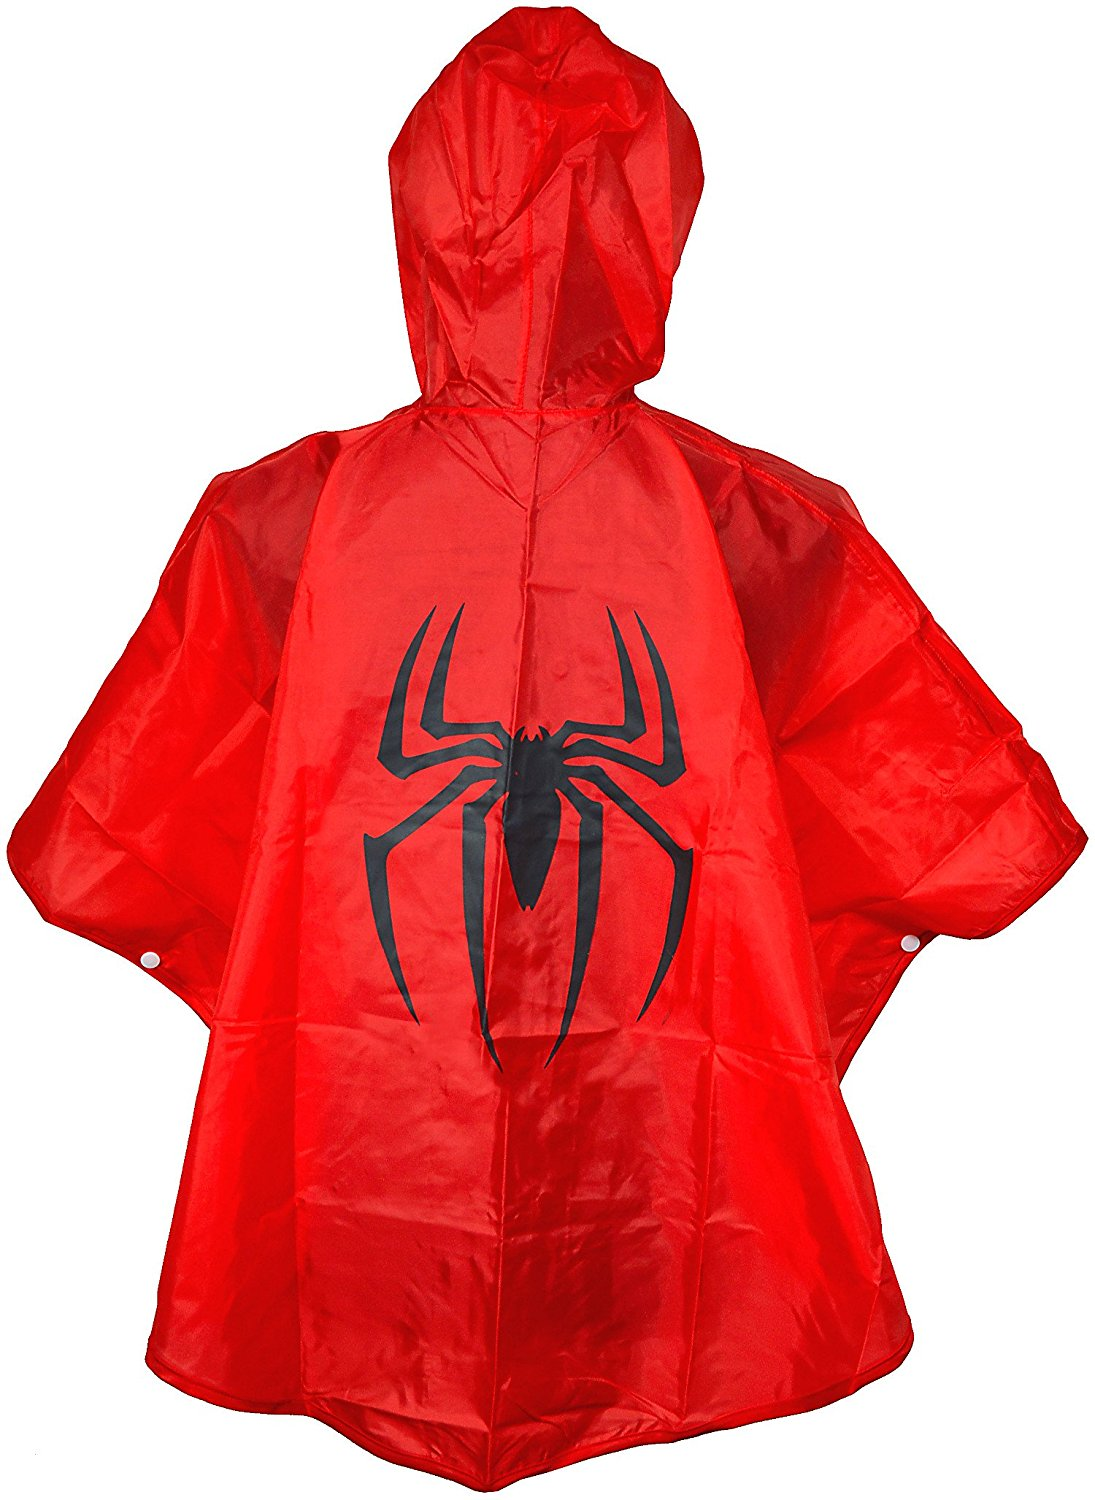 KIDS SPIDERMAN PONCHO RAINCOAT WITH FREE SUPER HERO BAG